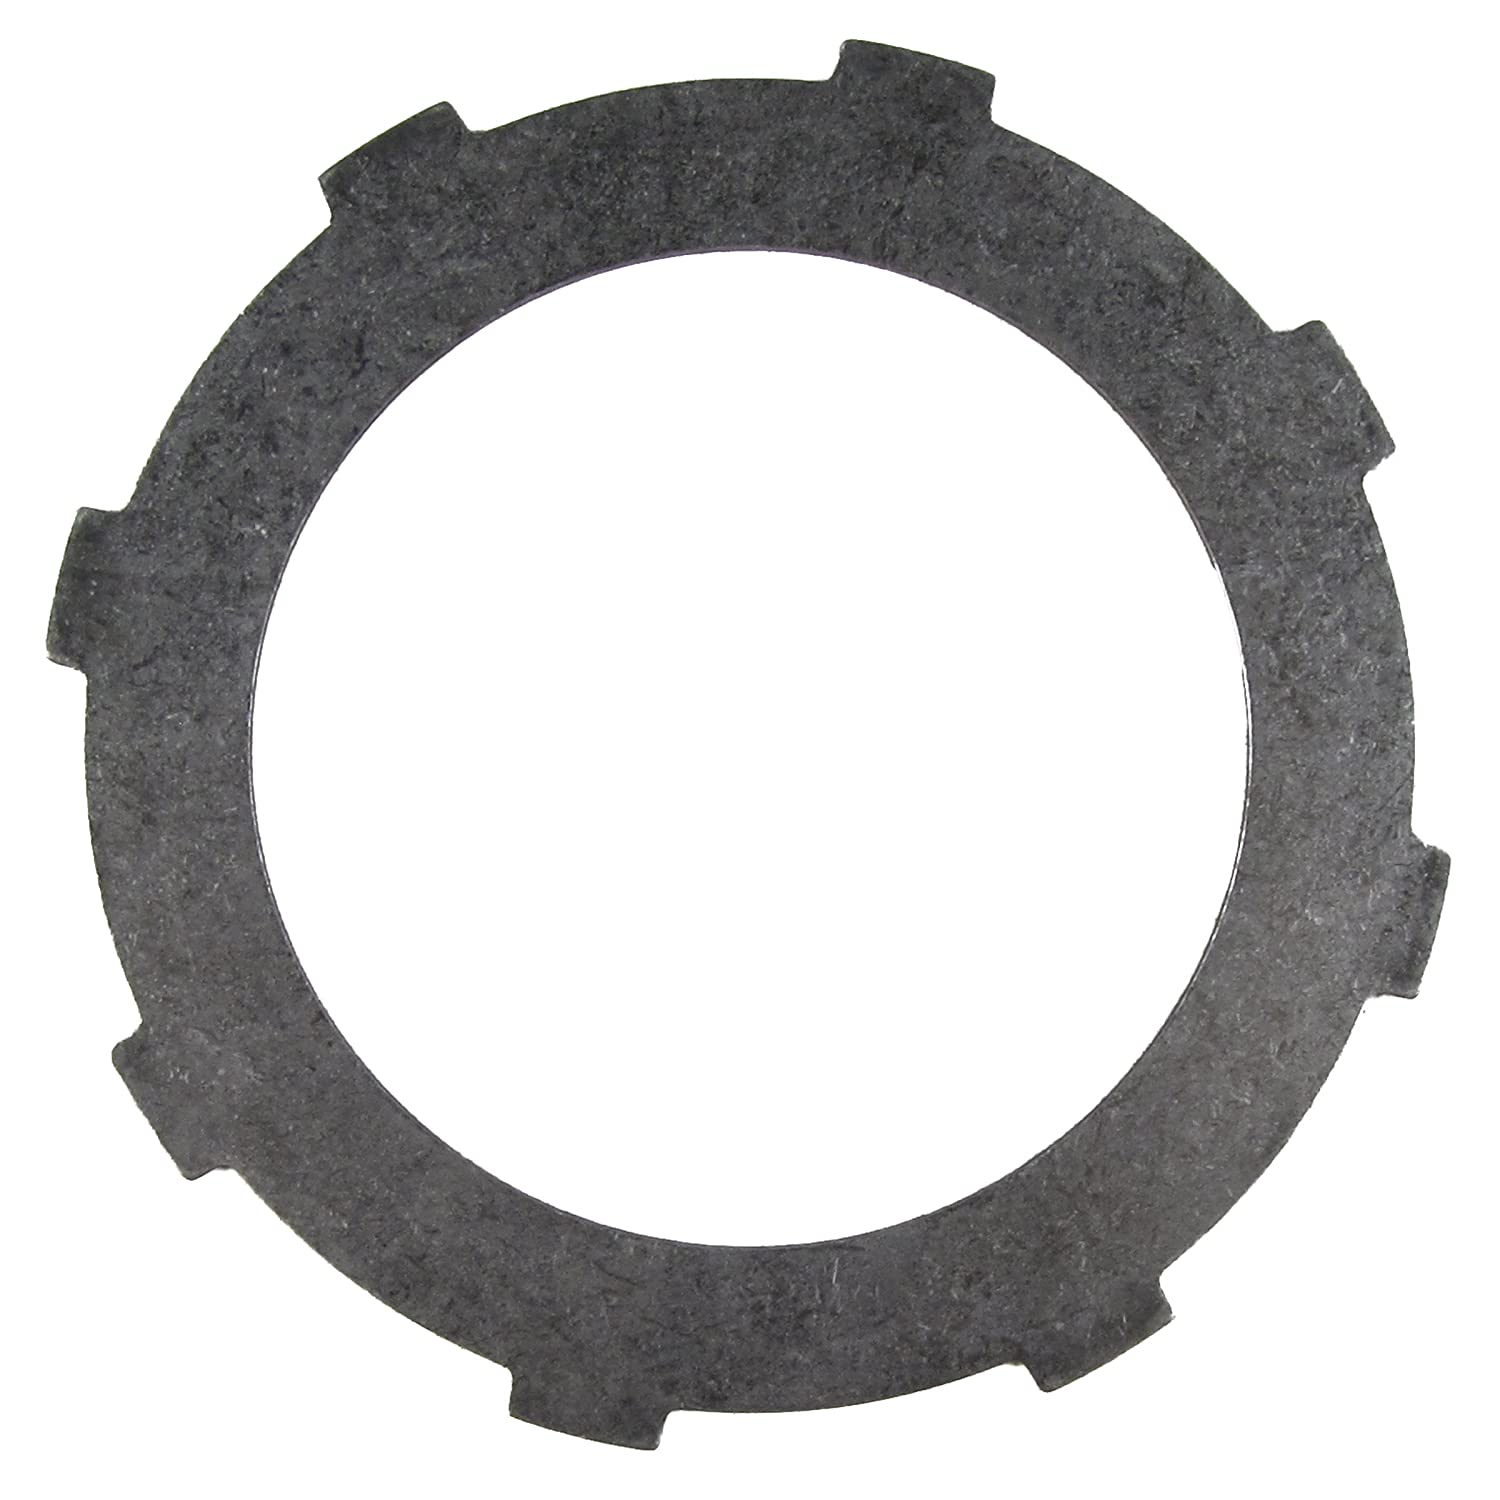 Steel Clutch Grader GEARCO New Orleans Mall Champion 11299 # by Alto 3 Manufacturer OFFicial shop Replaced